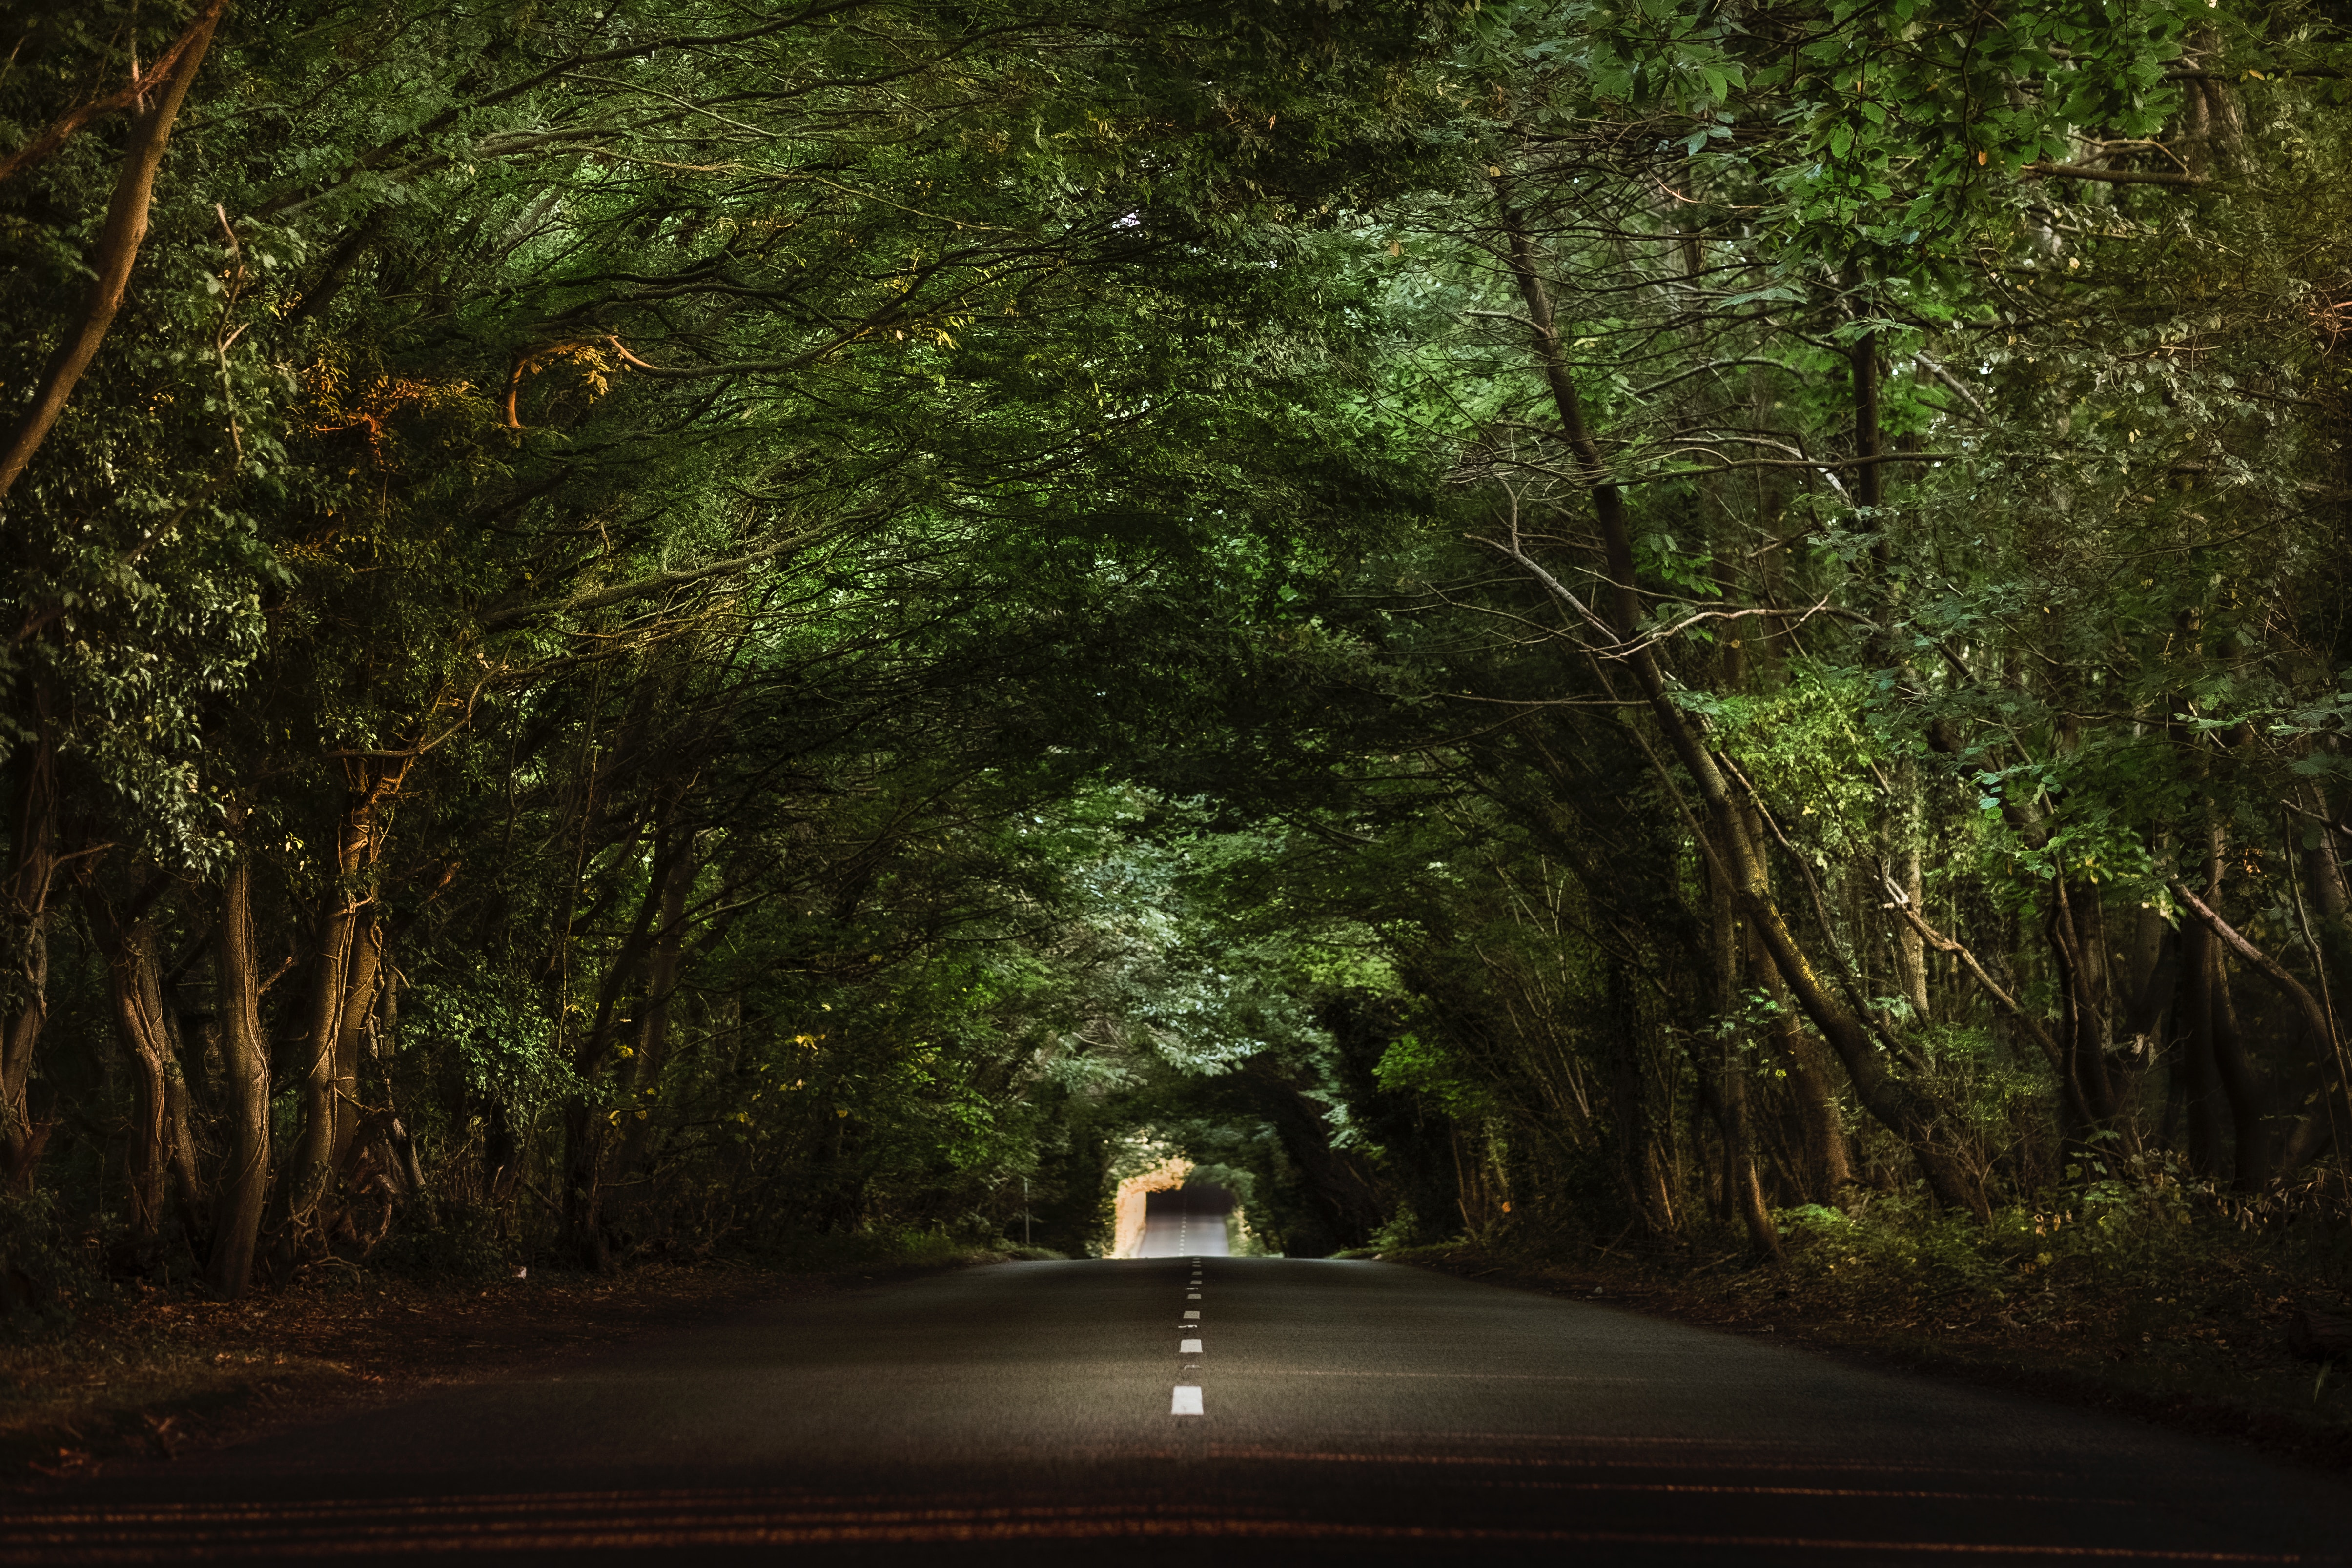 137950 download wallpaper Miscellanea, Trees, Miscellaneous, Road, Asphalt, Branches, Tunnel screensavers and pictures for free